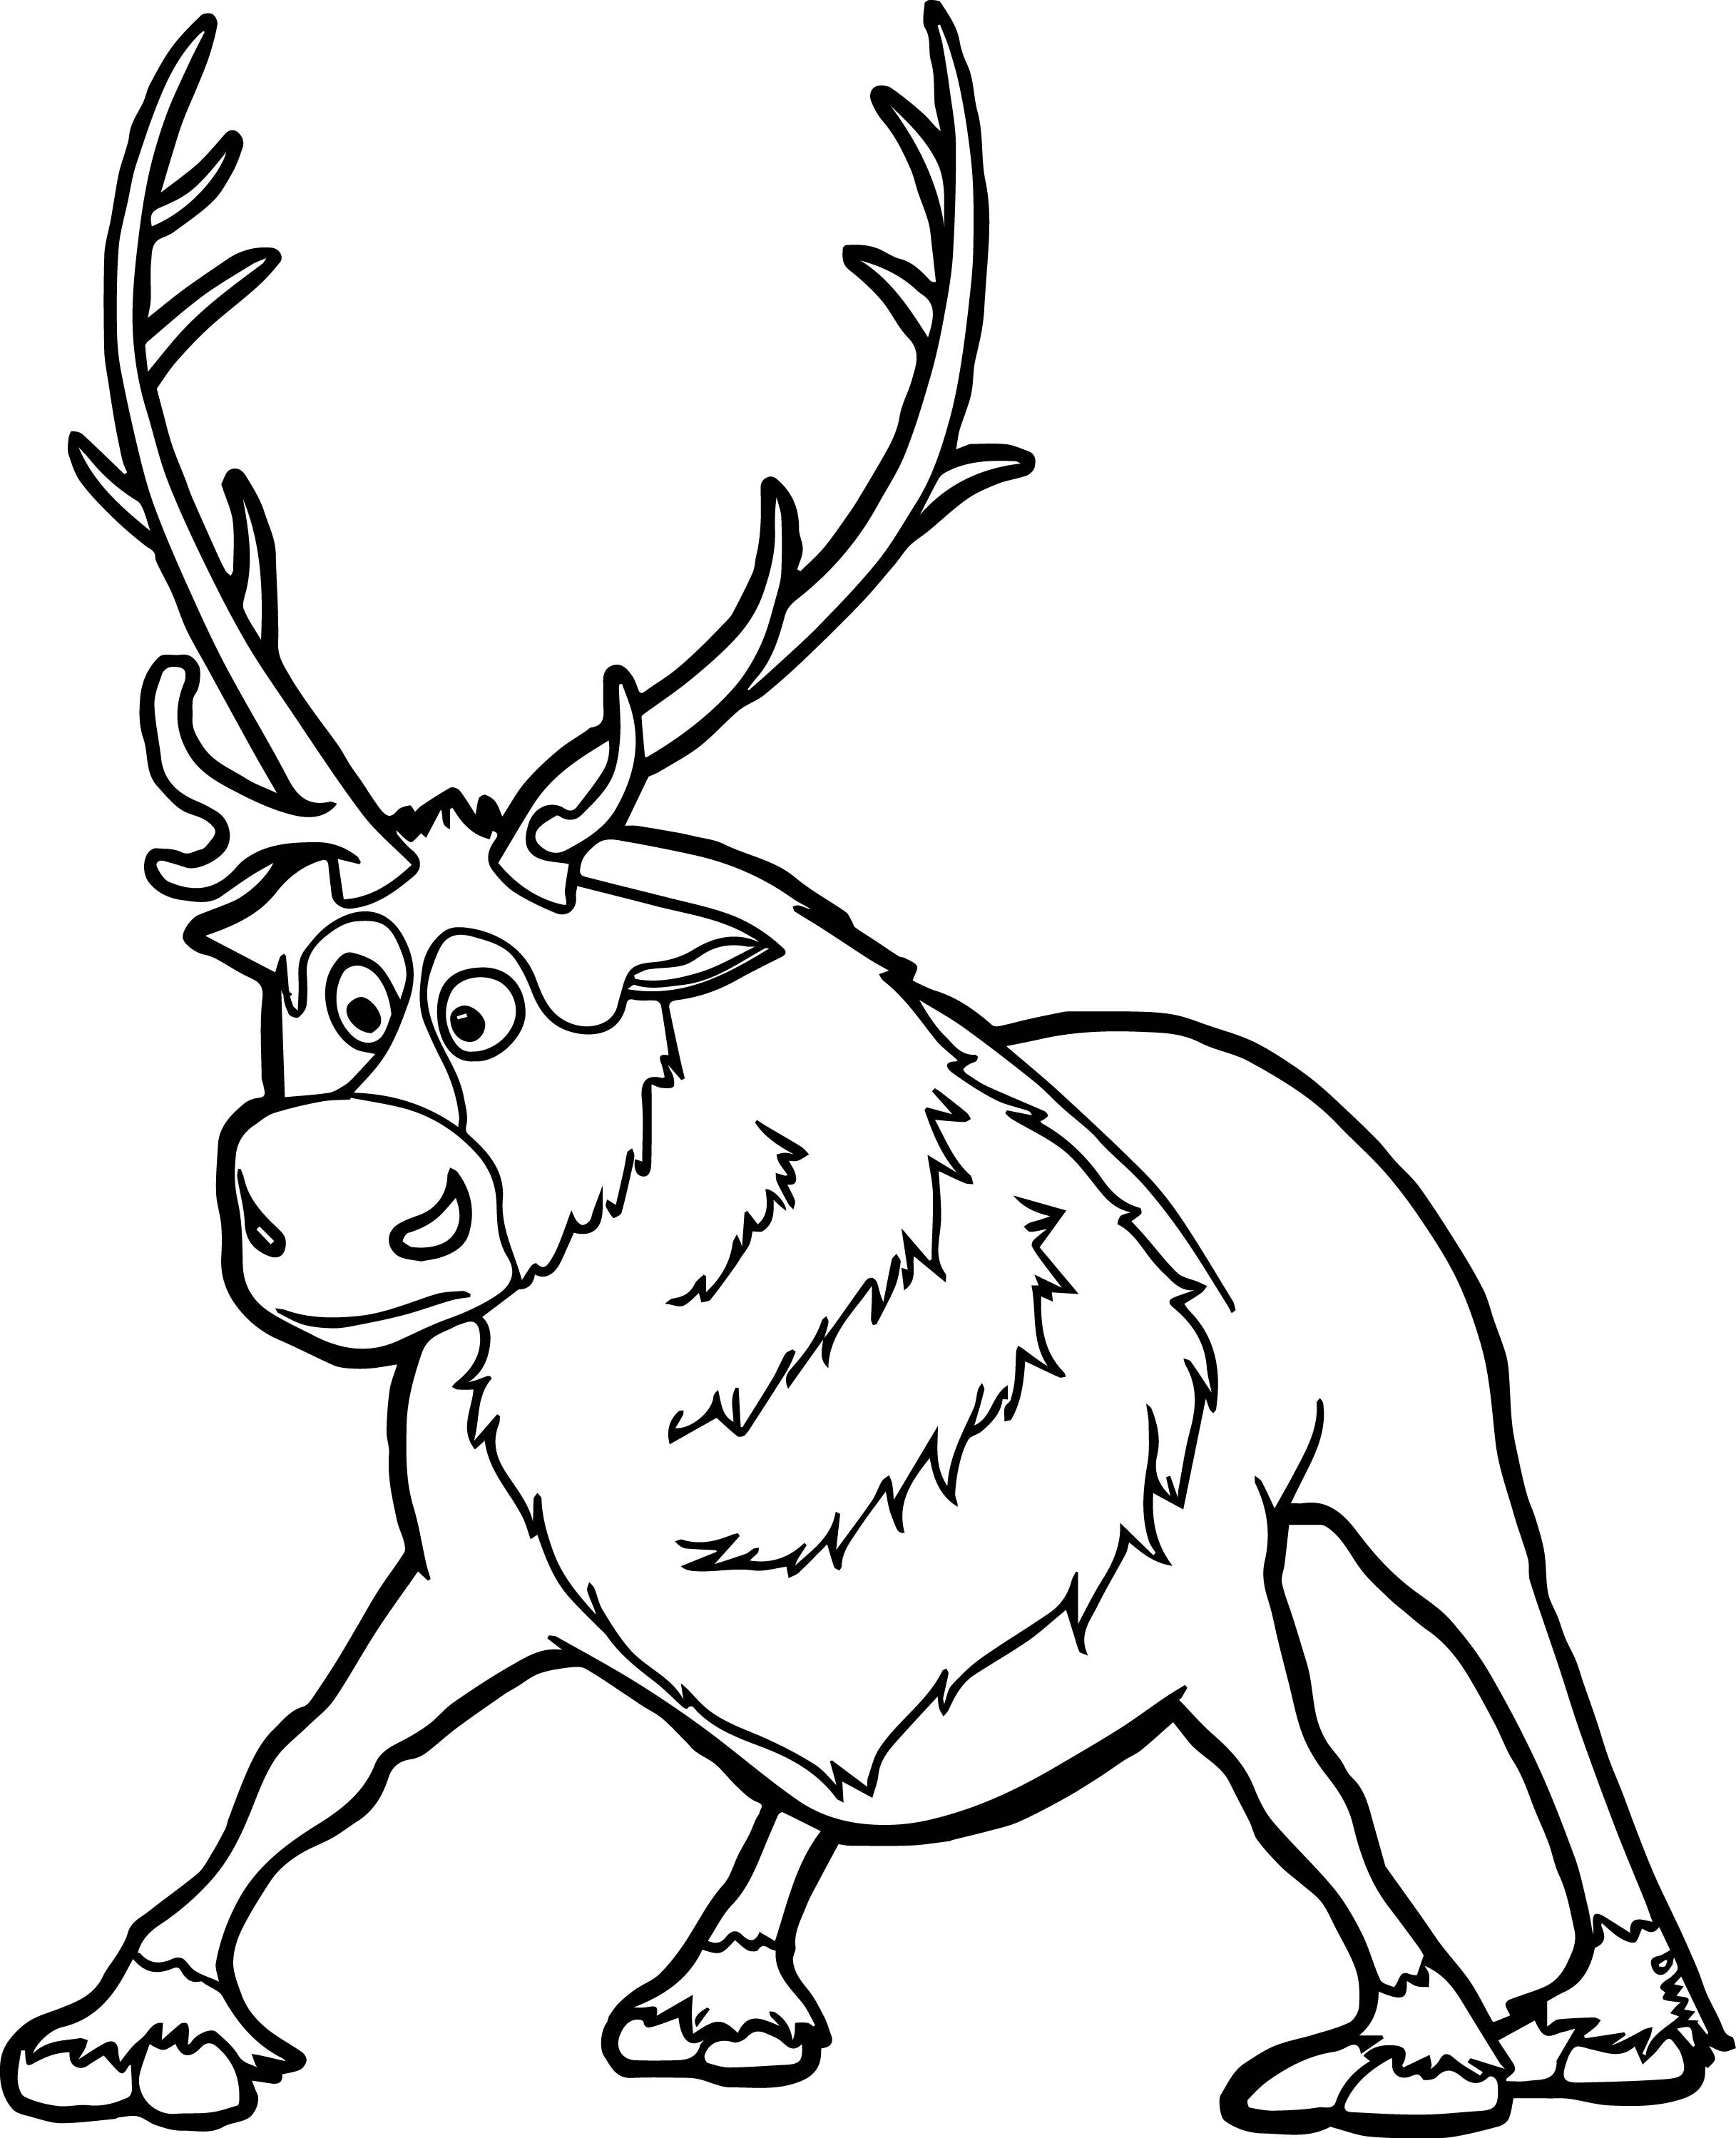 how to draw sven from frozen disney drawing pencil sketch colorful realistic art draw frozen sven to how from